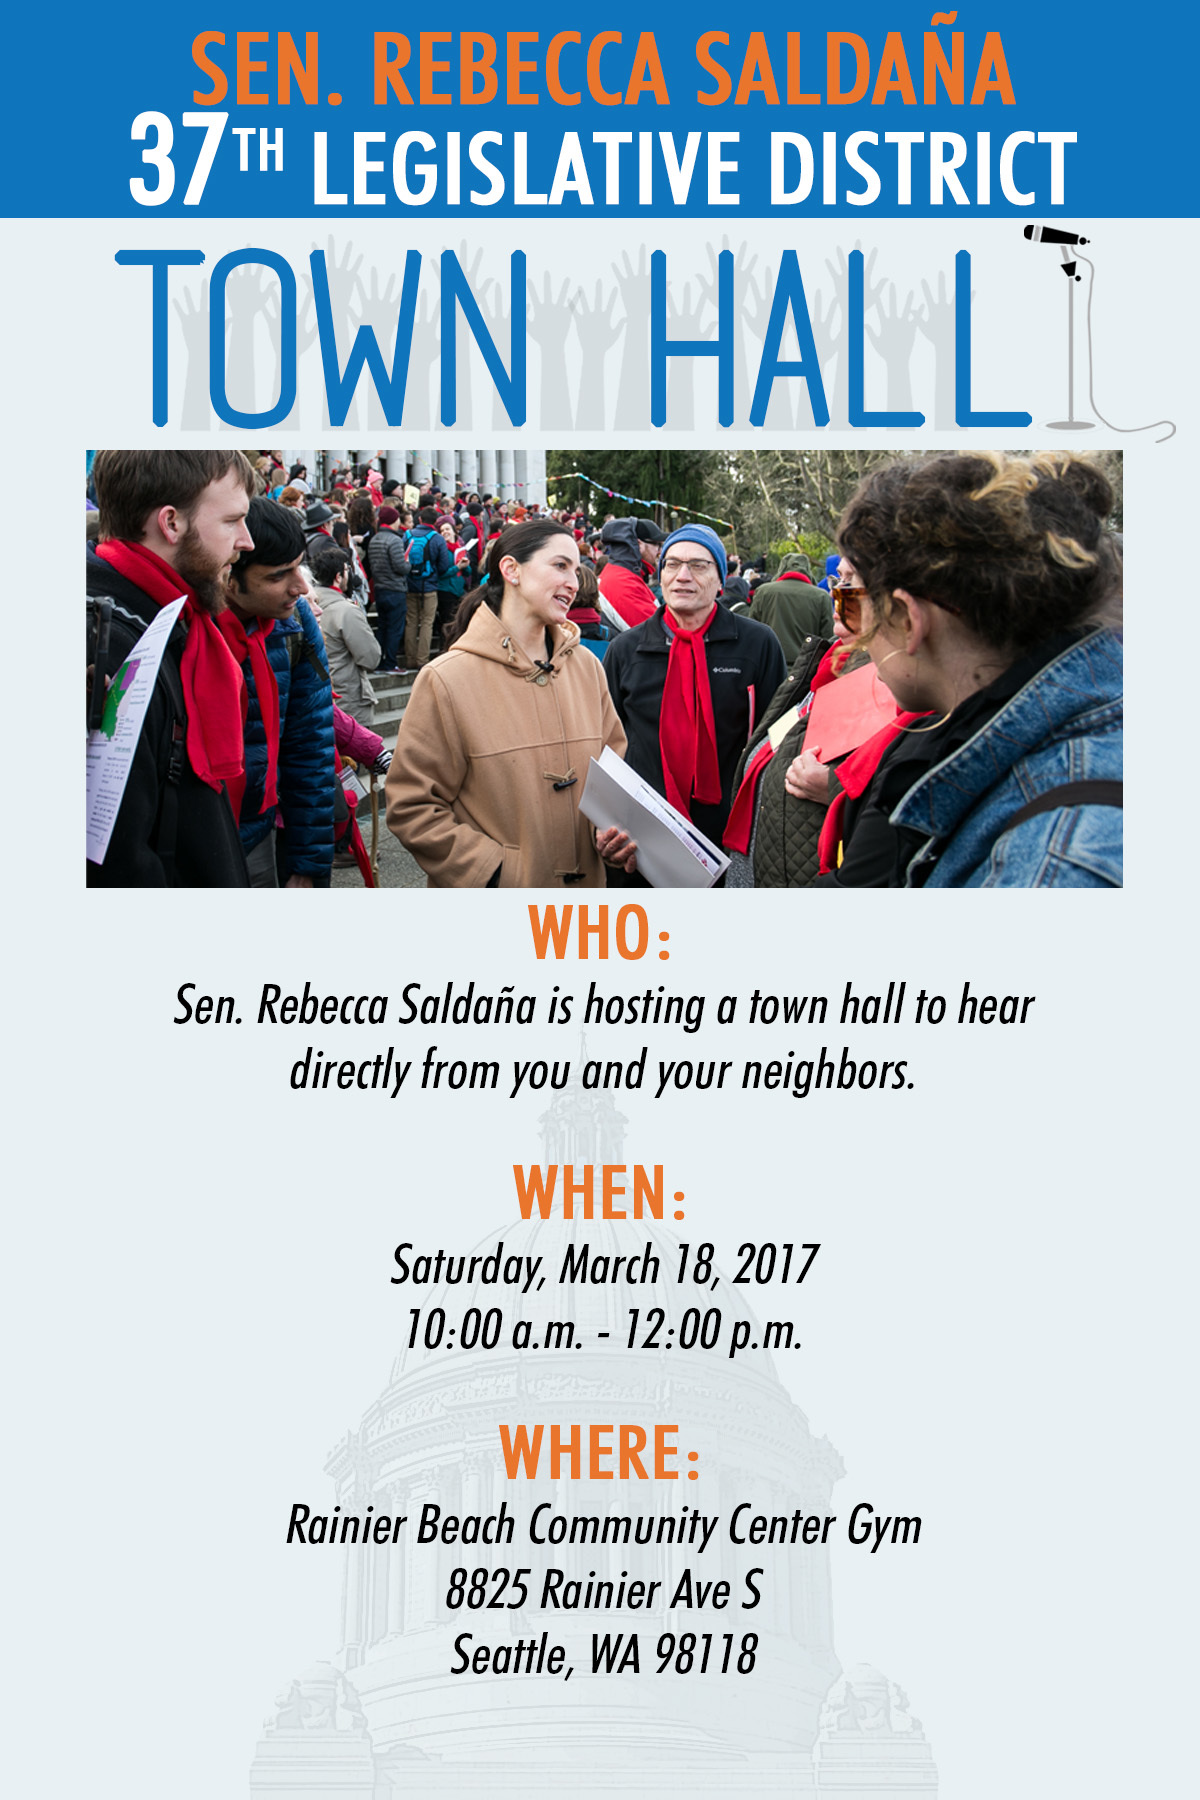 37th town hall 2017